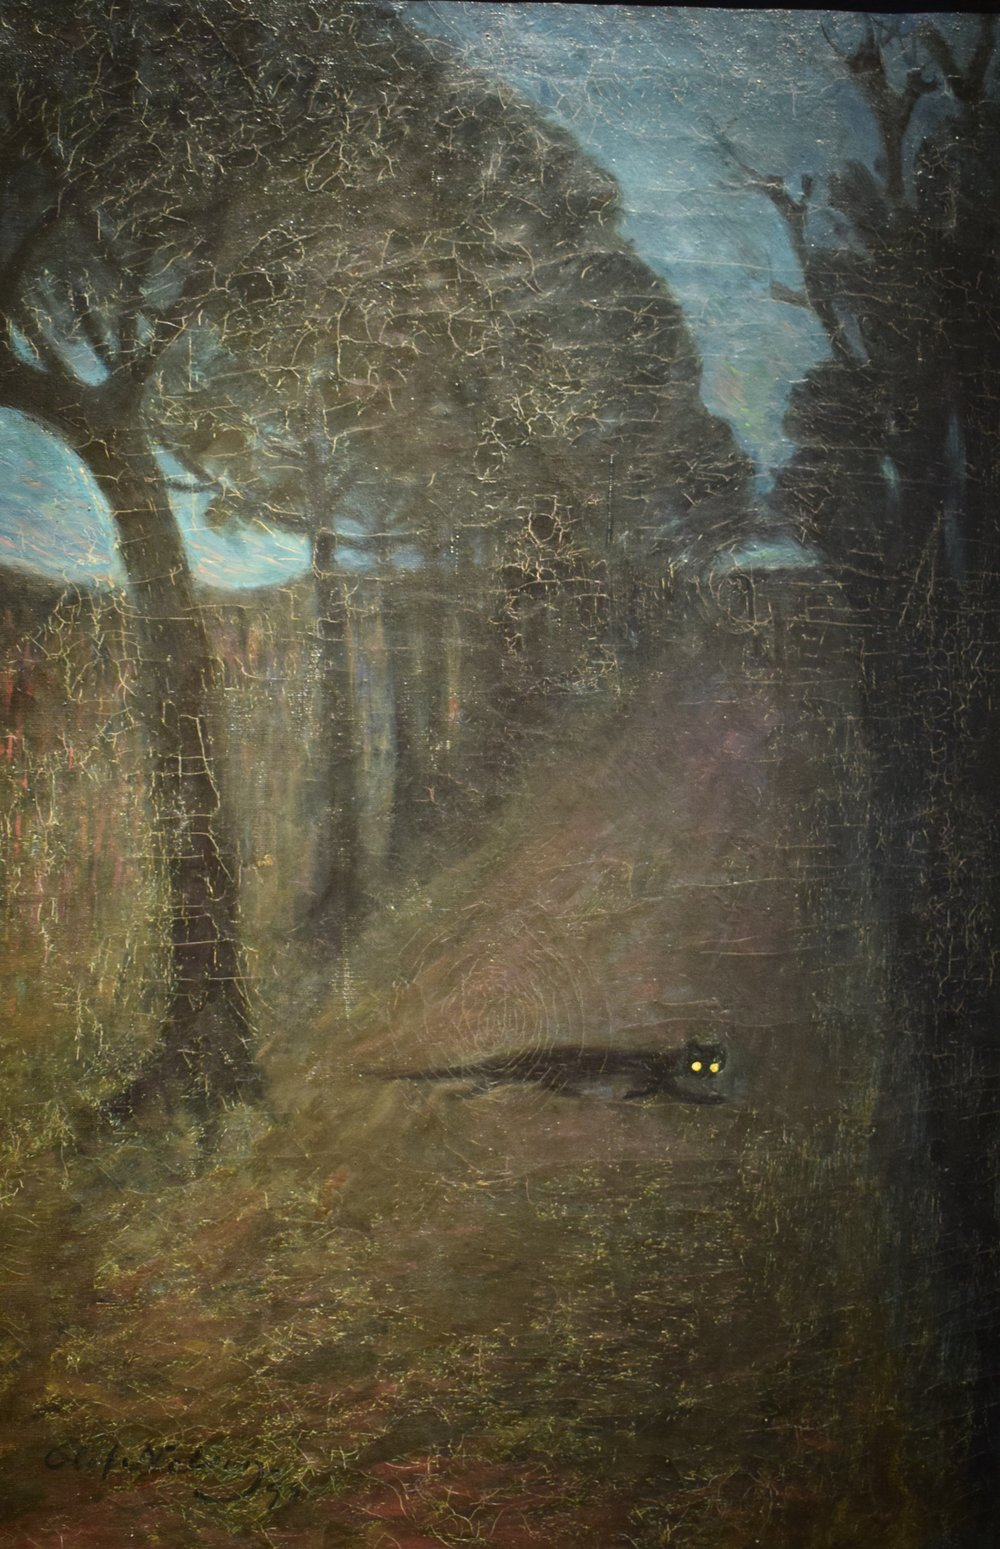 Olof Sager Nelson, Nocturne, 1893